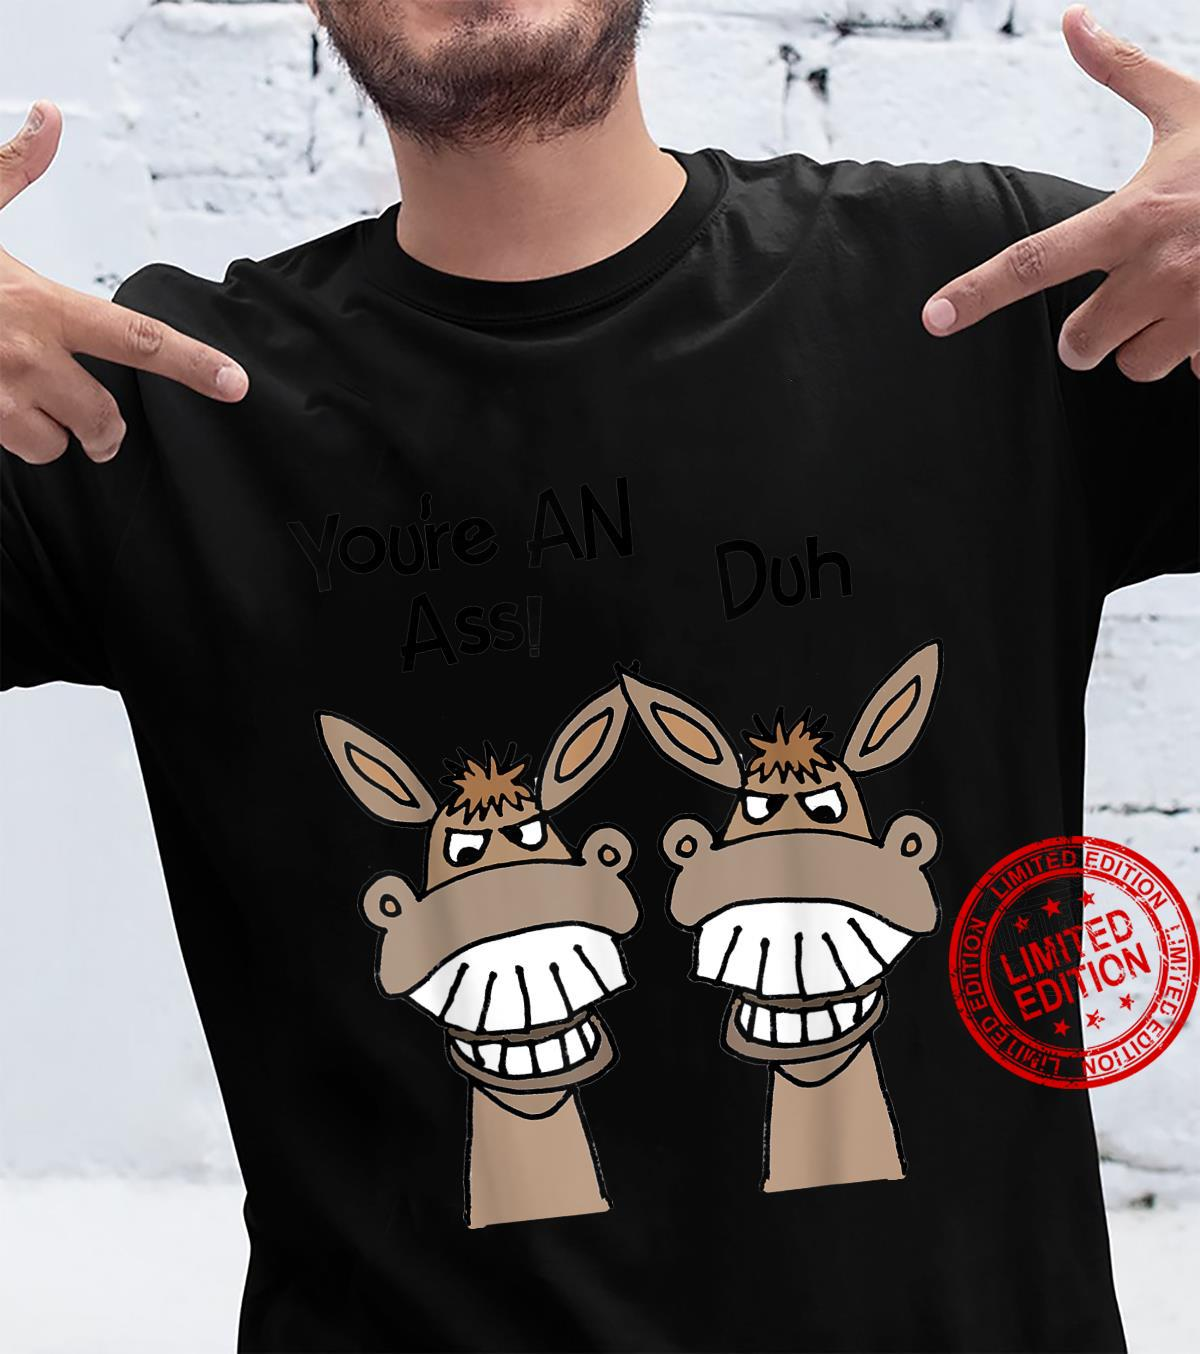 Smileteesfunny Donkey You're an Ass Insult Satire Shirt